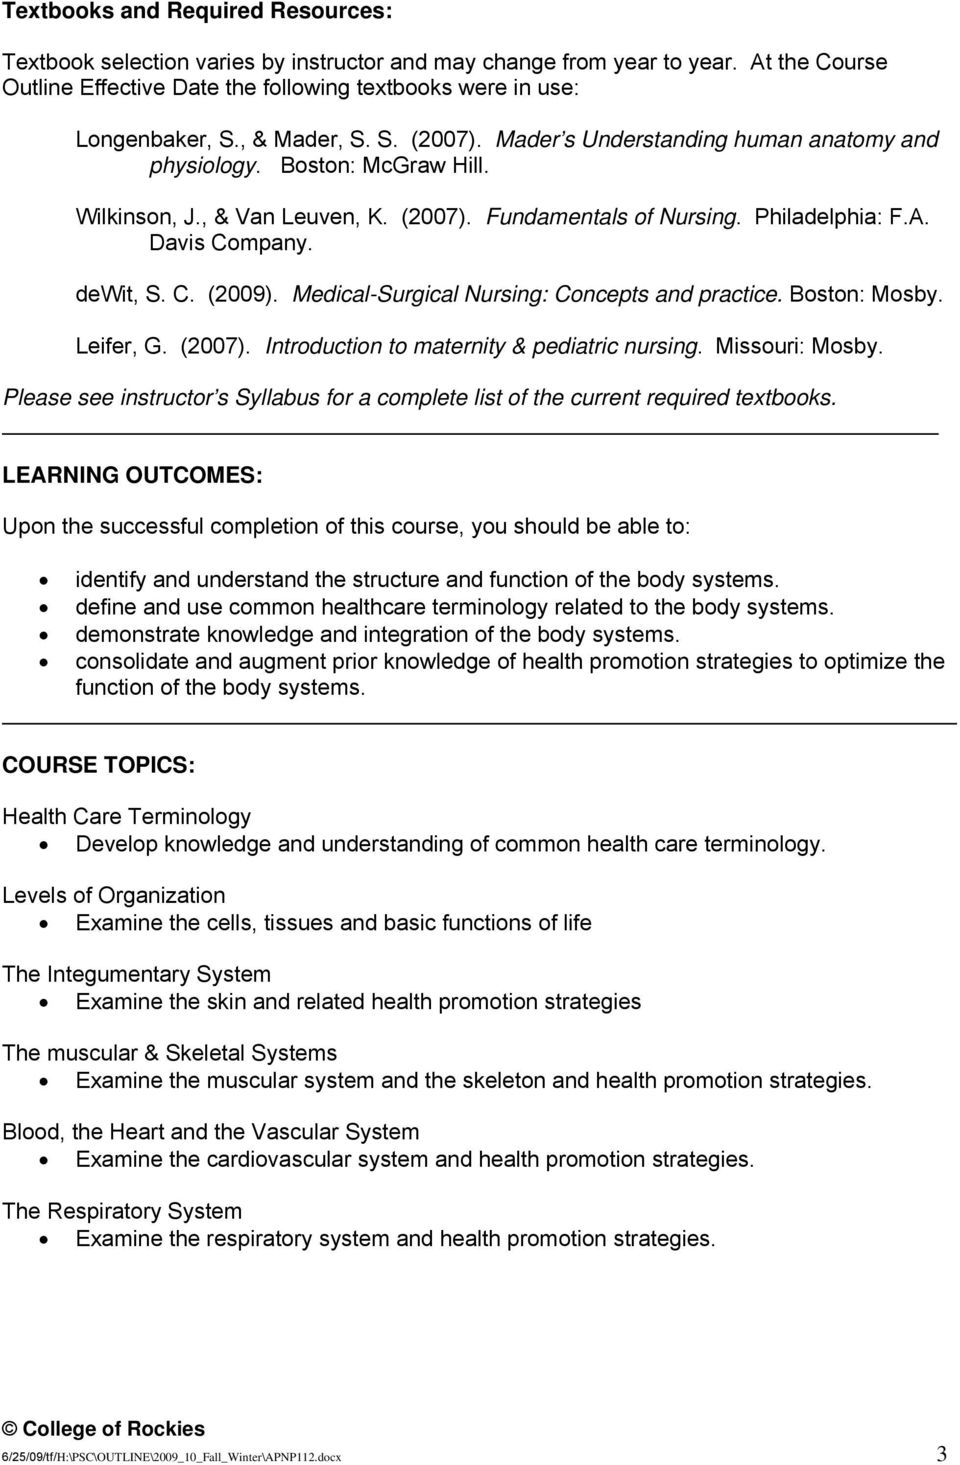 dewit, S. C. (2009). Medical-Surgical Nursing: Concepts and practice. Boston: Mosby. Leifer, G. (2007). Introduction to maternity & pediatric nursing. Missouri: Mosby.